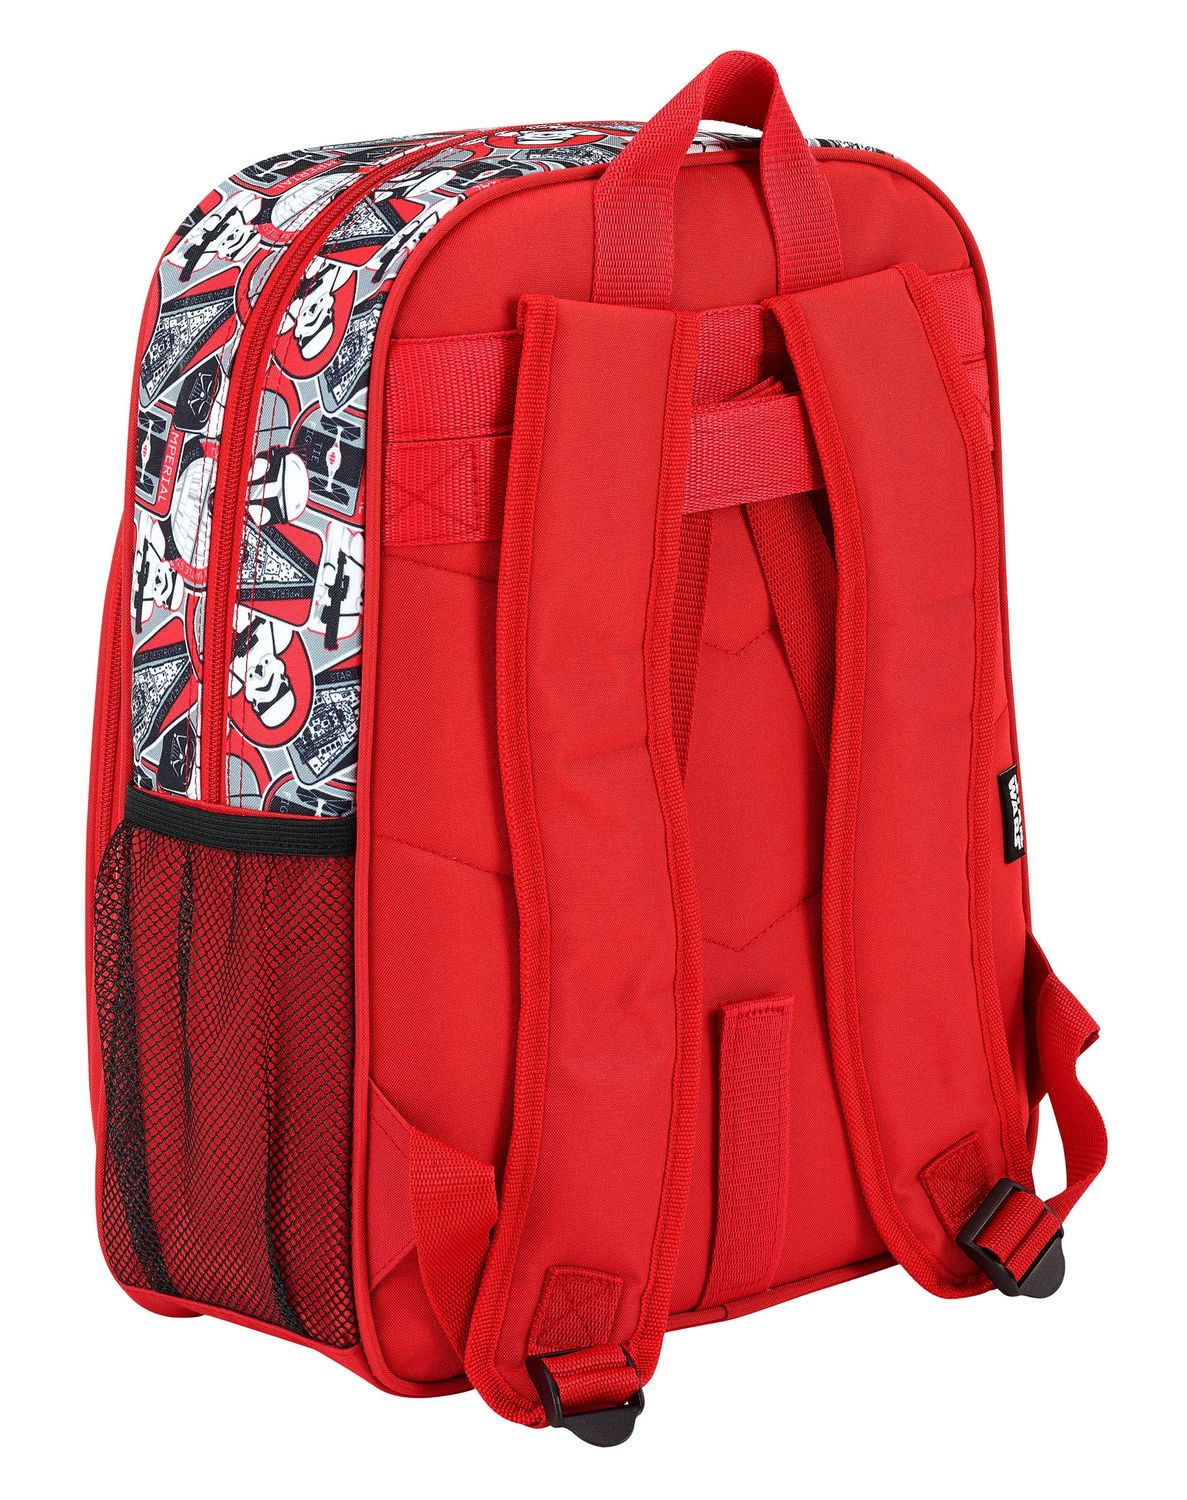 Star Wars Galactic Mission Backpack 38cm – image 2